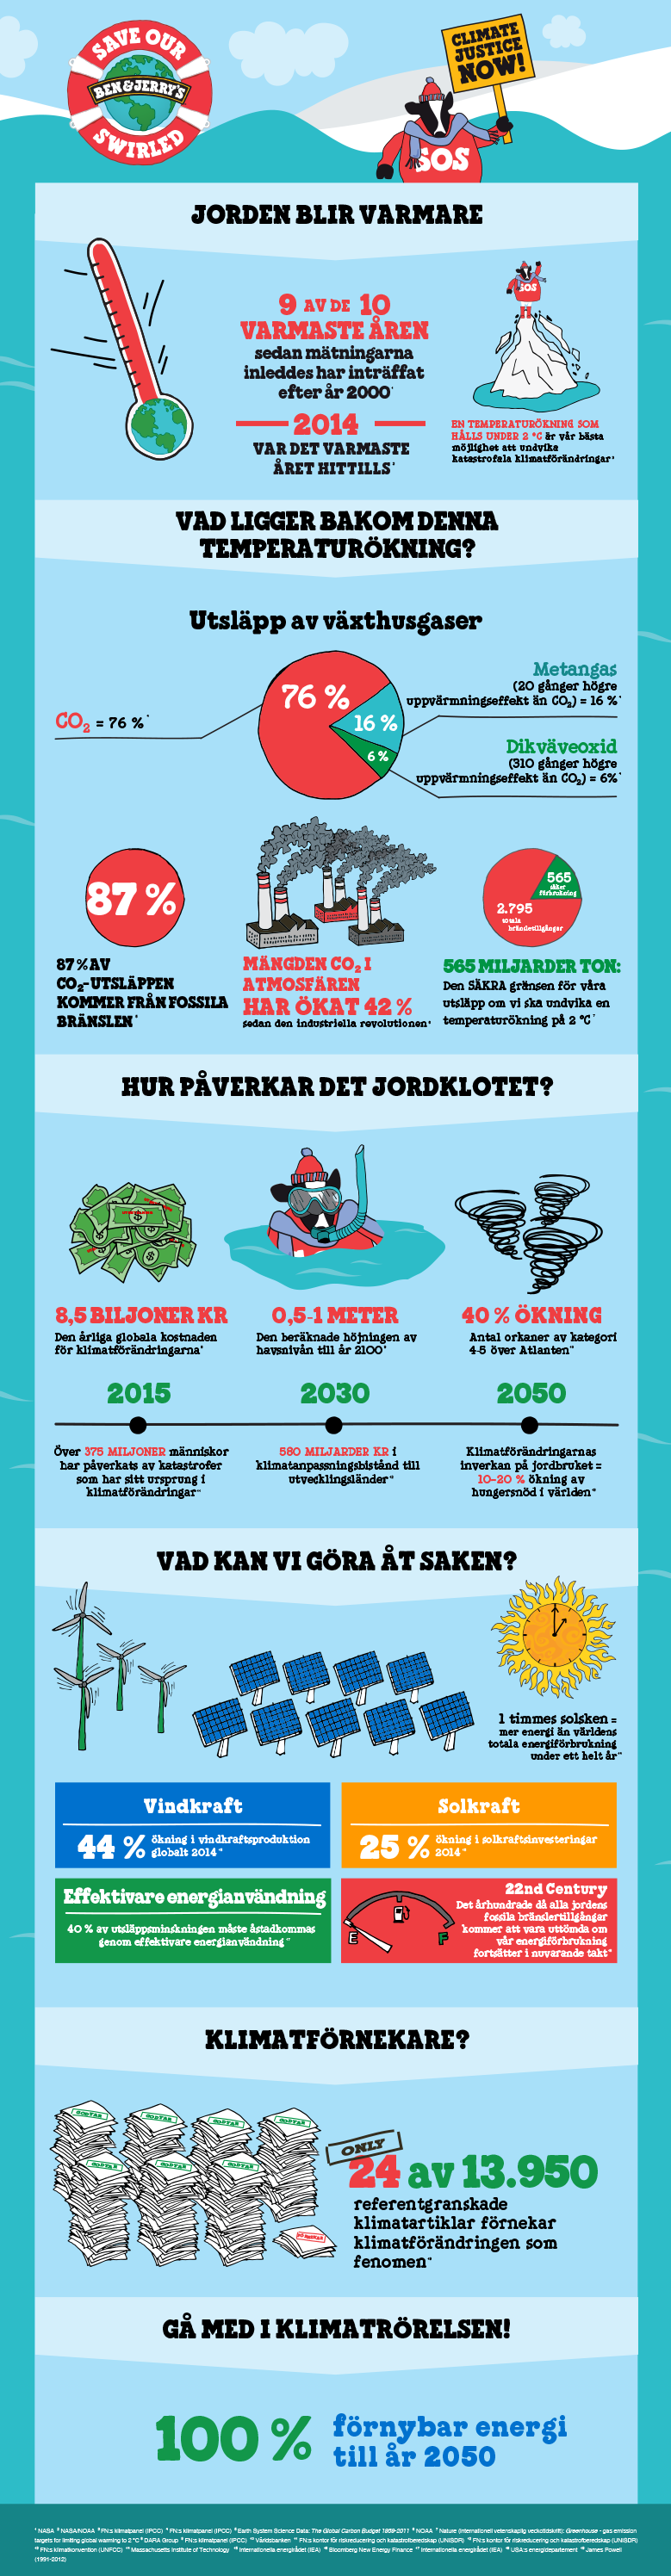 BJ_ClimateChange_Infographic_Swedish-(Sweden).png